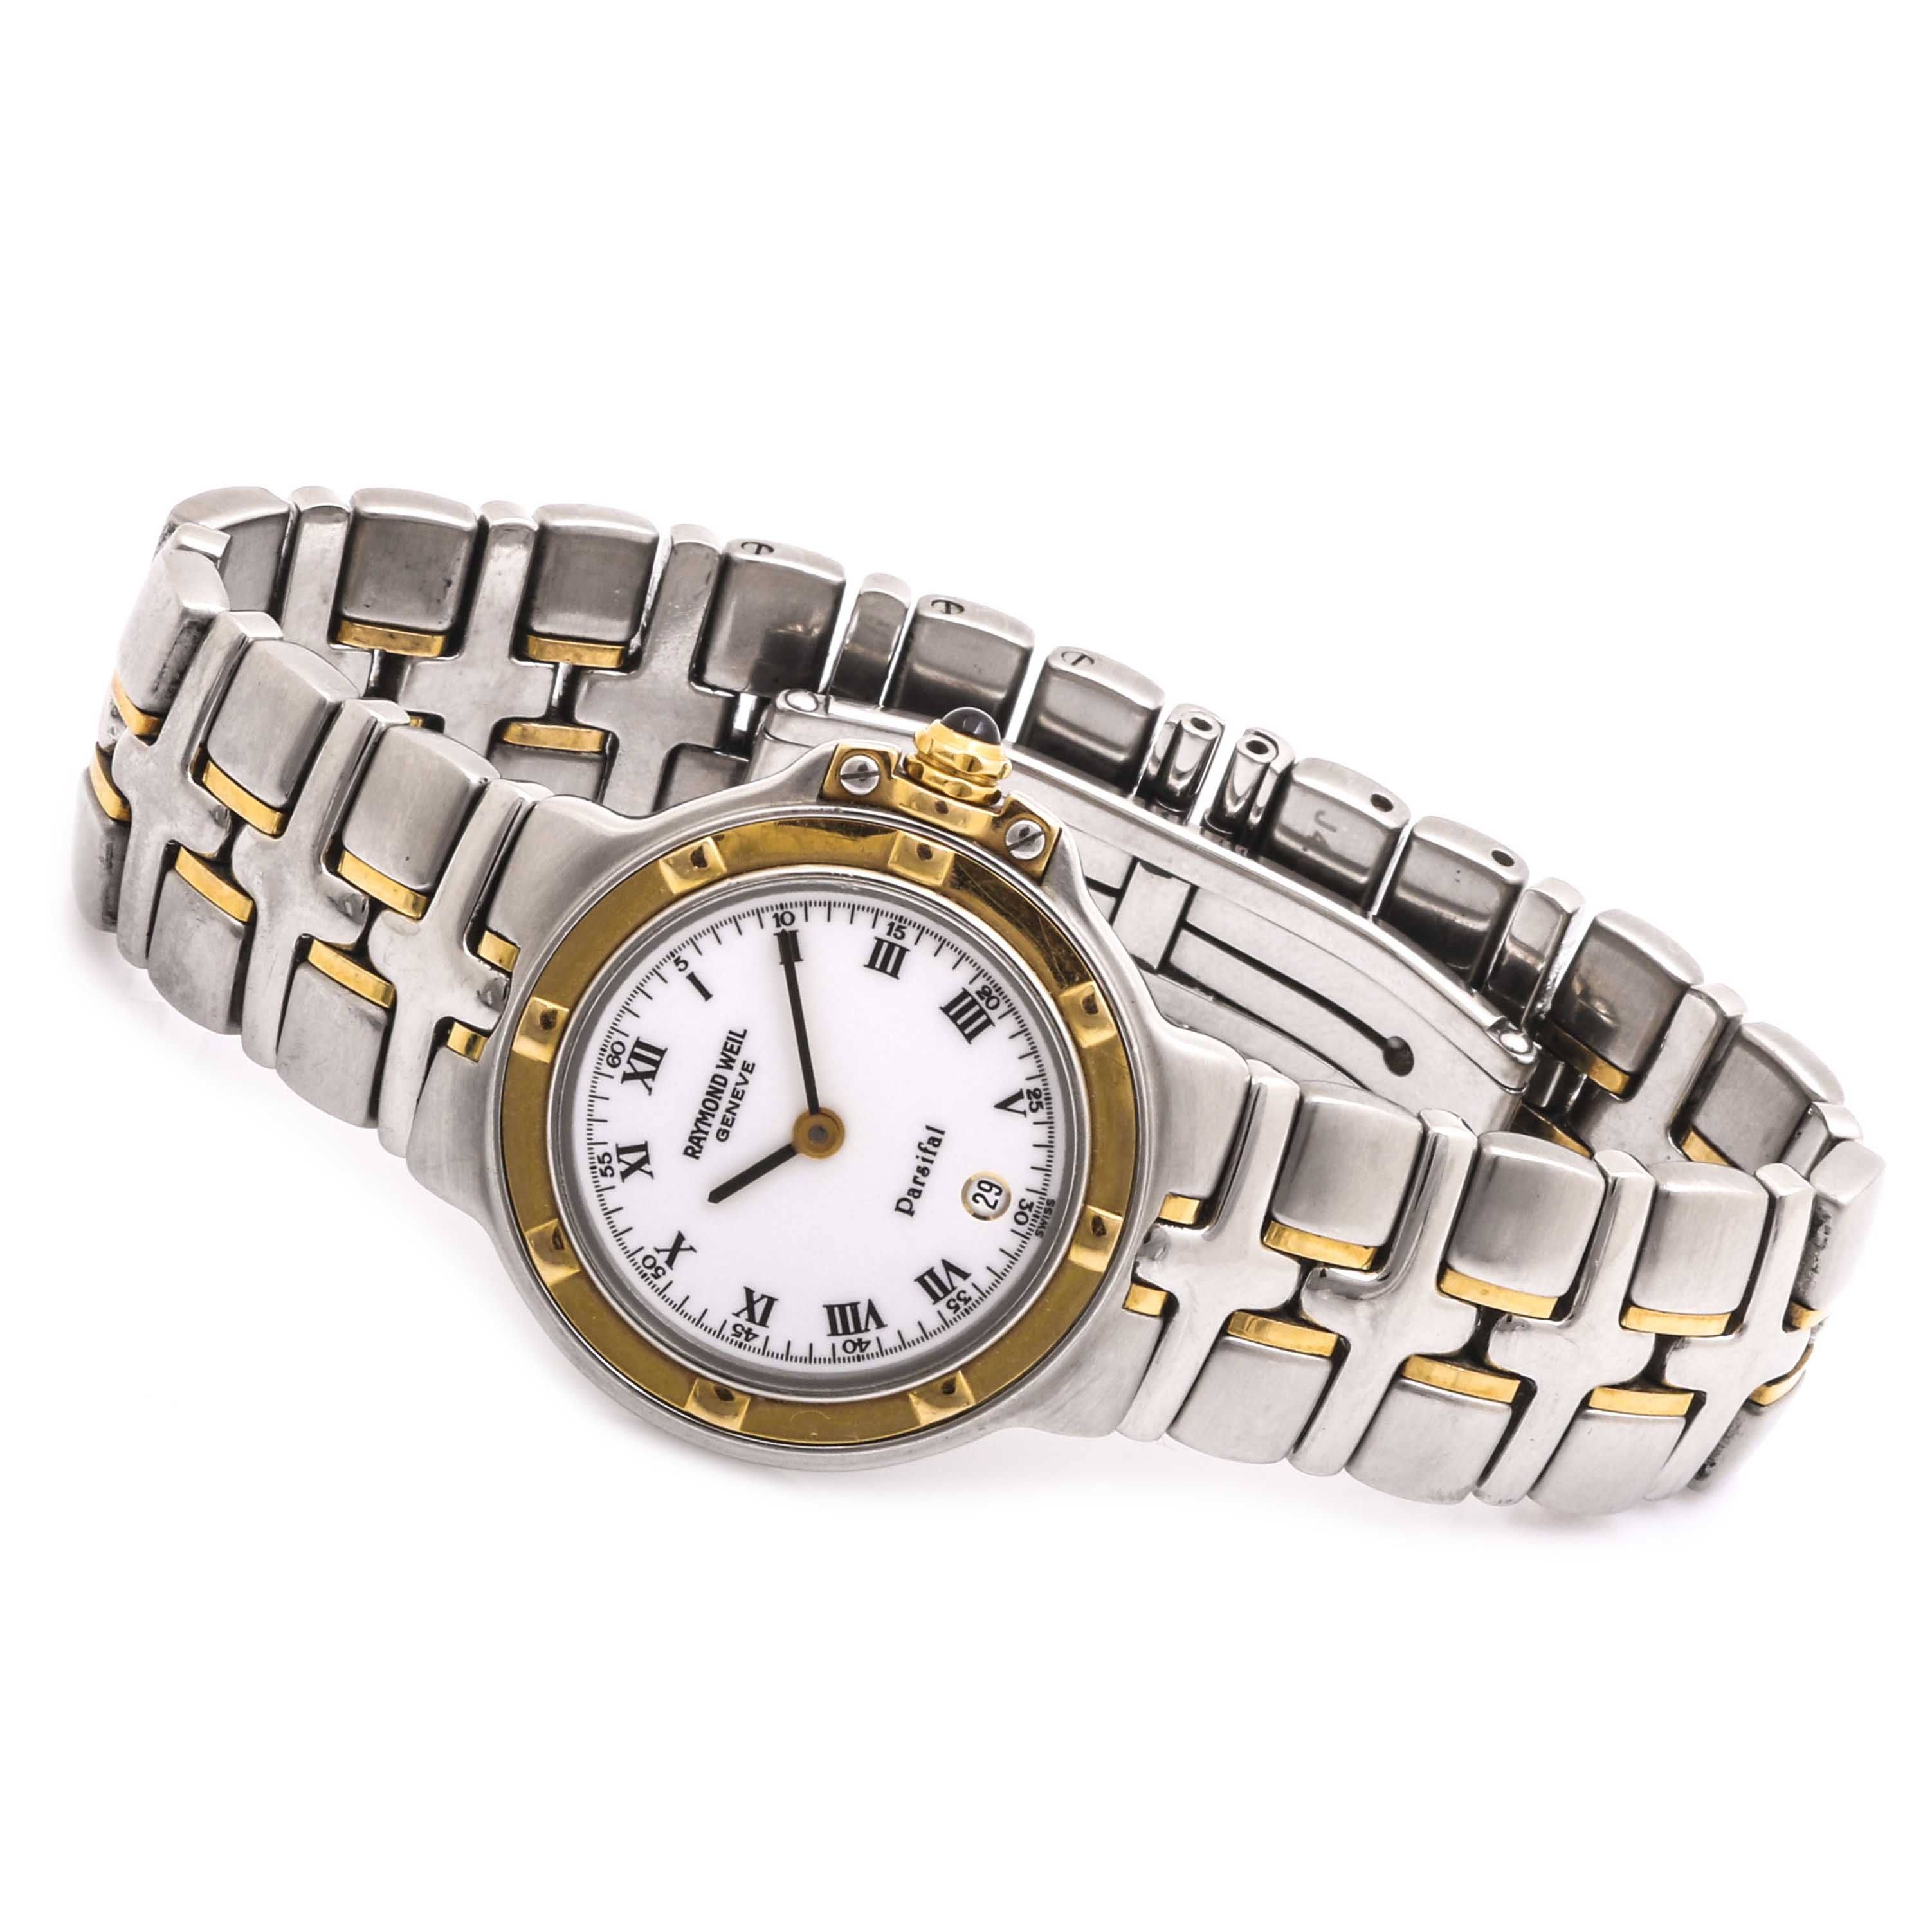 Stainless Steel Raymond Weil Geneve Parsifal Wristwatch